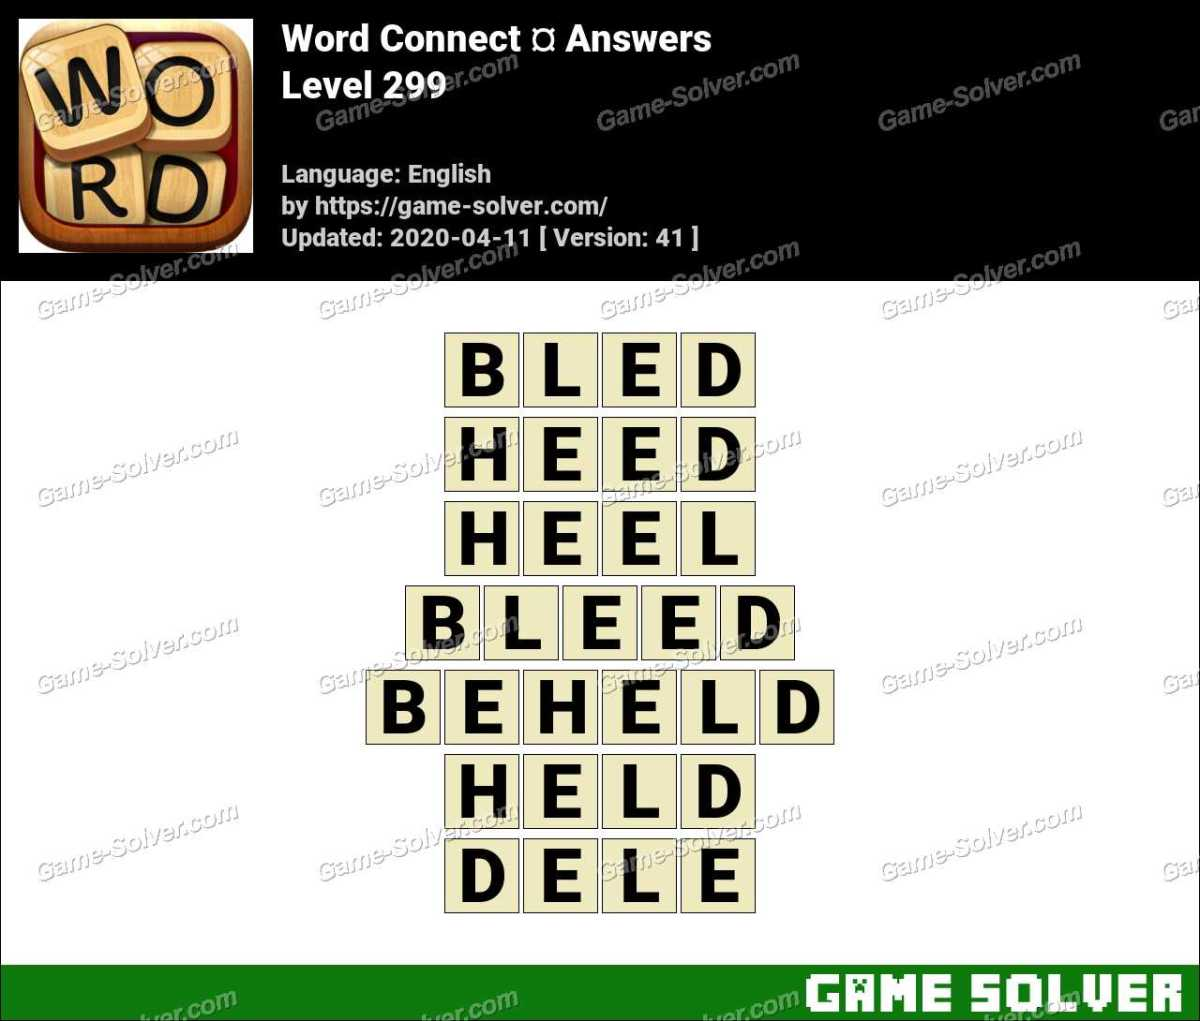 Word Connect Level 299 Answers